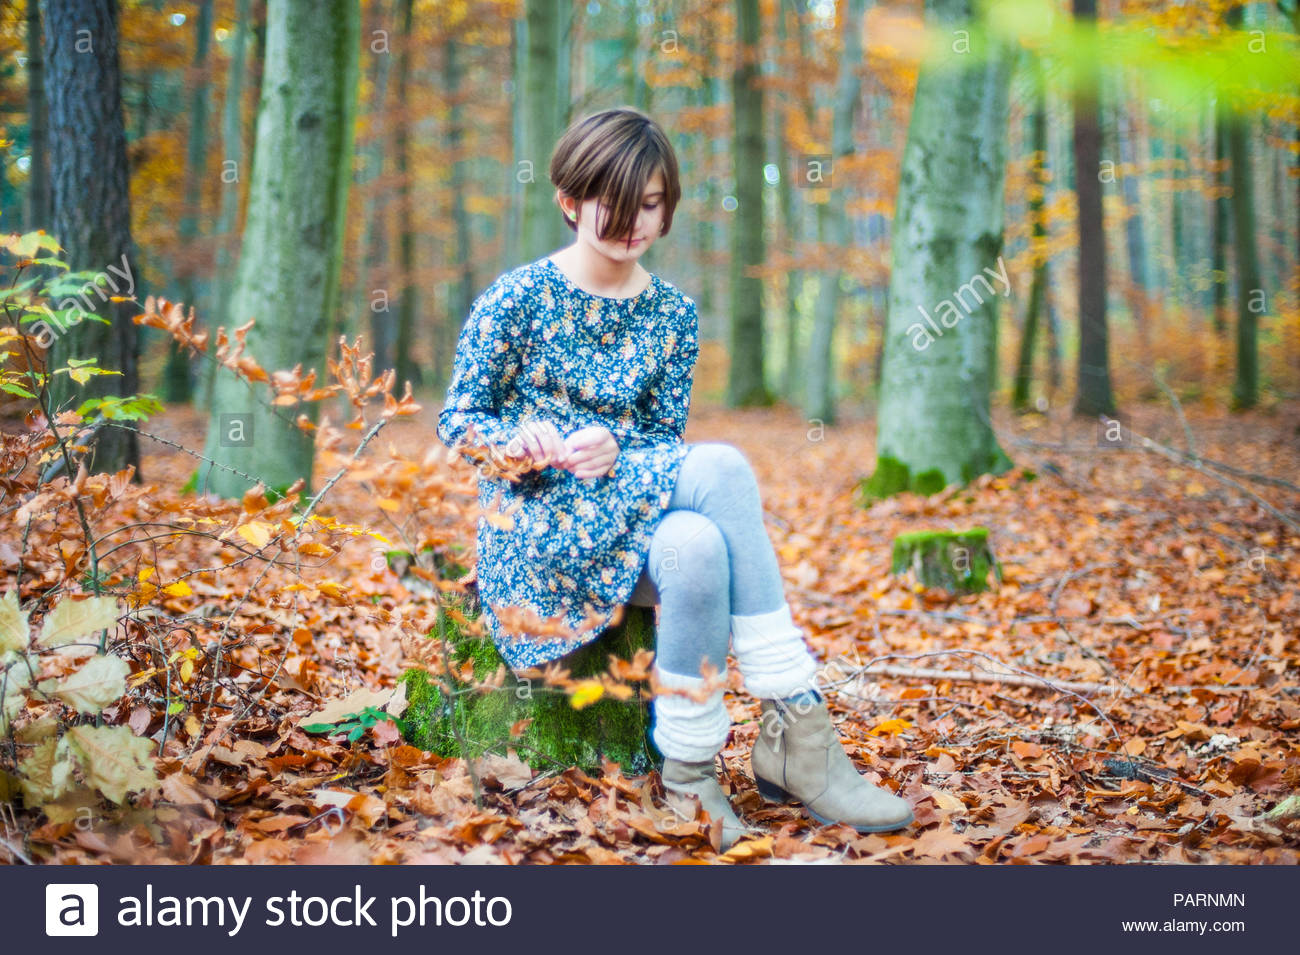 A young girl sitting in the forest during autumn - Stock Image